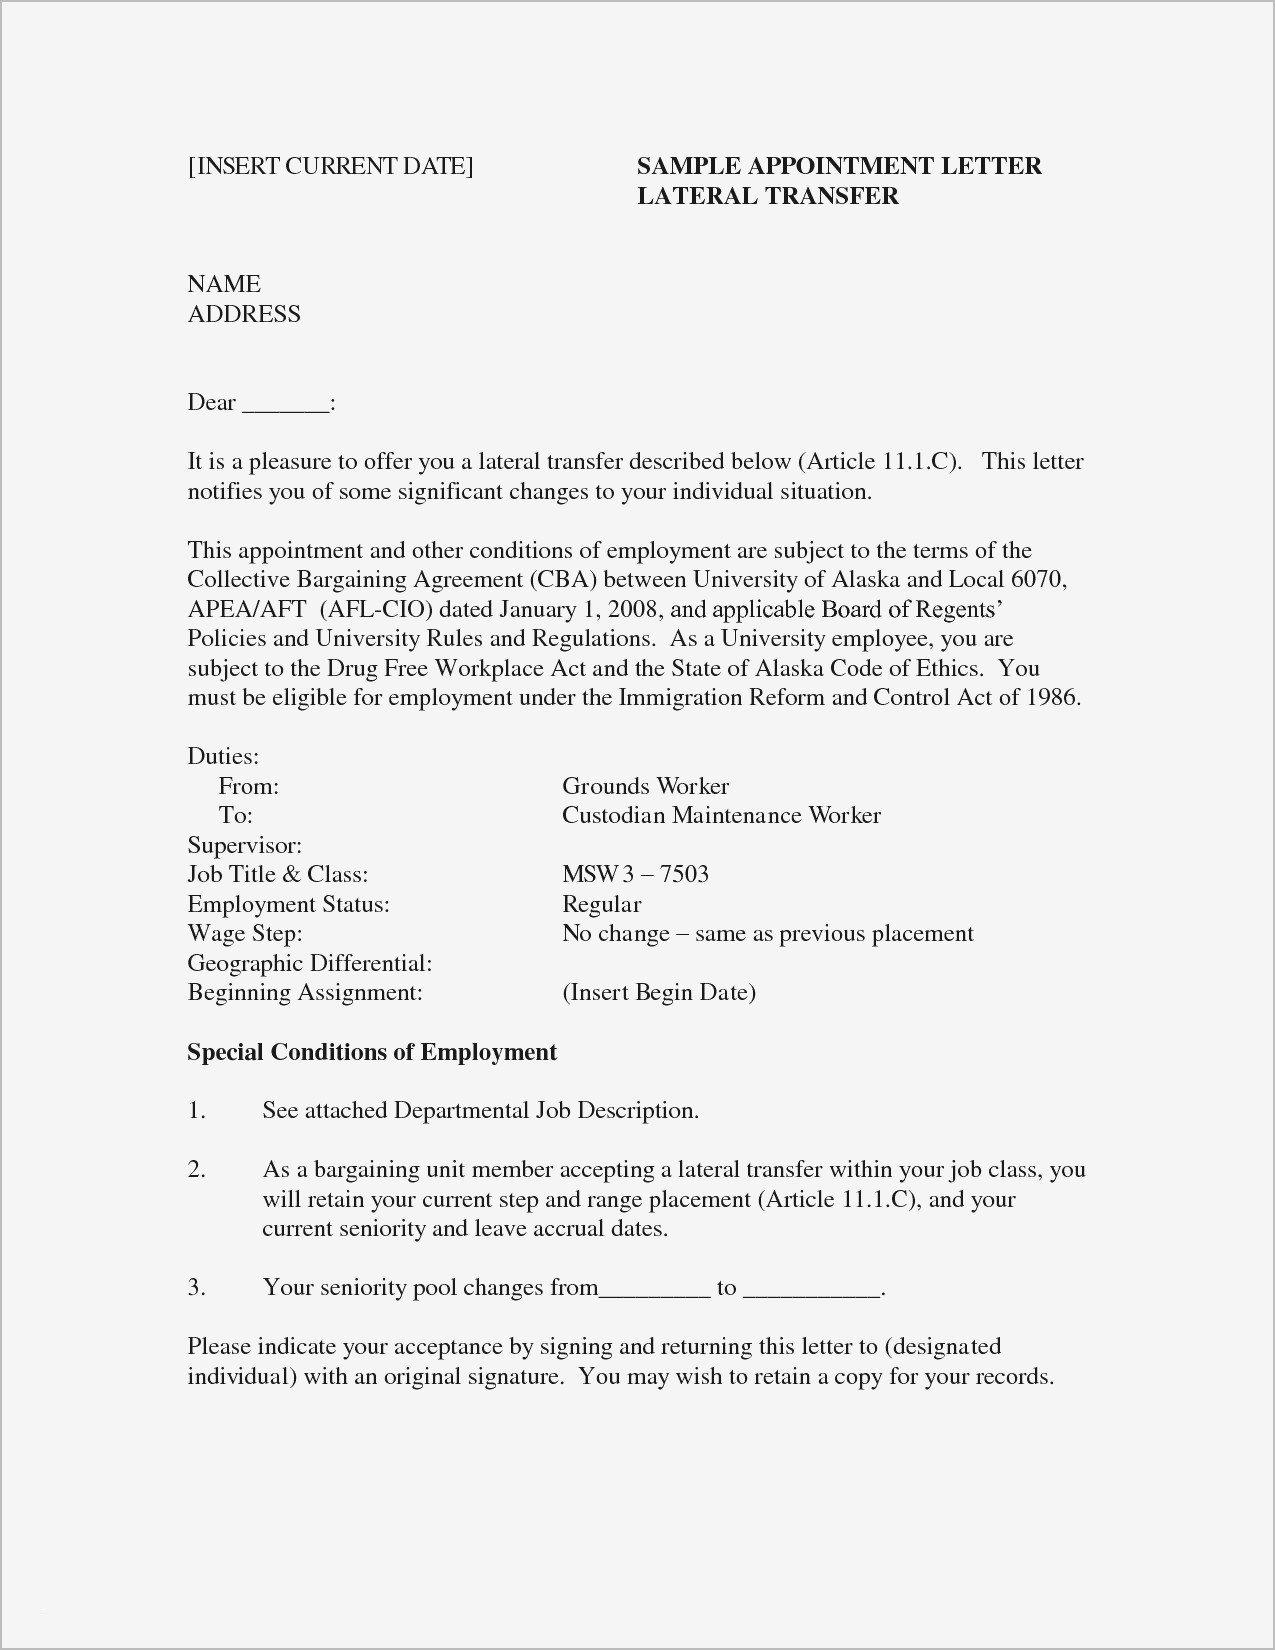 Good Resume Titles - Rofessional Summary Resume Best Summary Examples for Resume